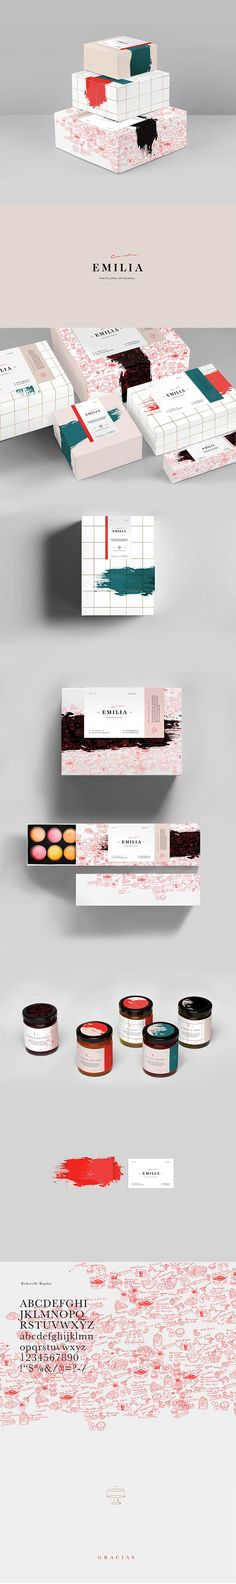 Emilia, It is an artisan bakery. The products are traditional recipes with a very special and personal touch of the chef that is completely different, contrasting the taste of the traditional recipe.